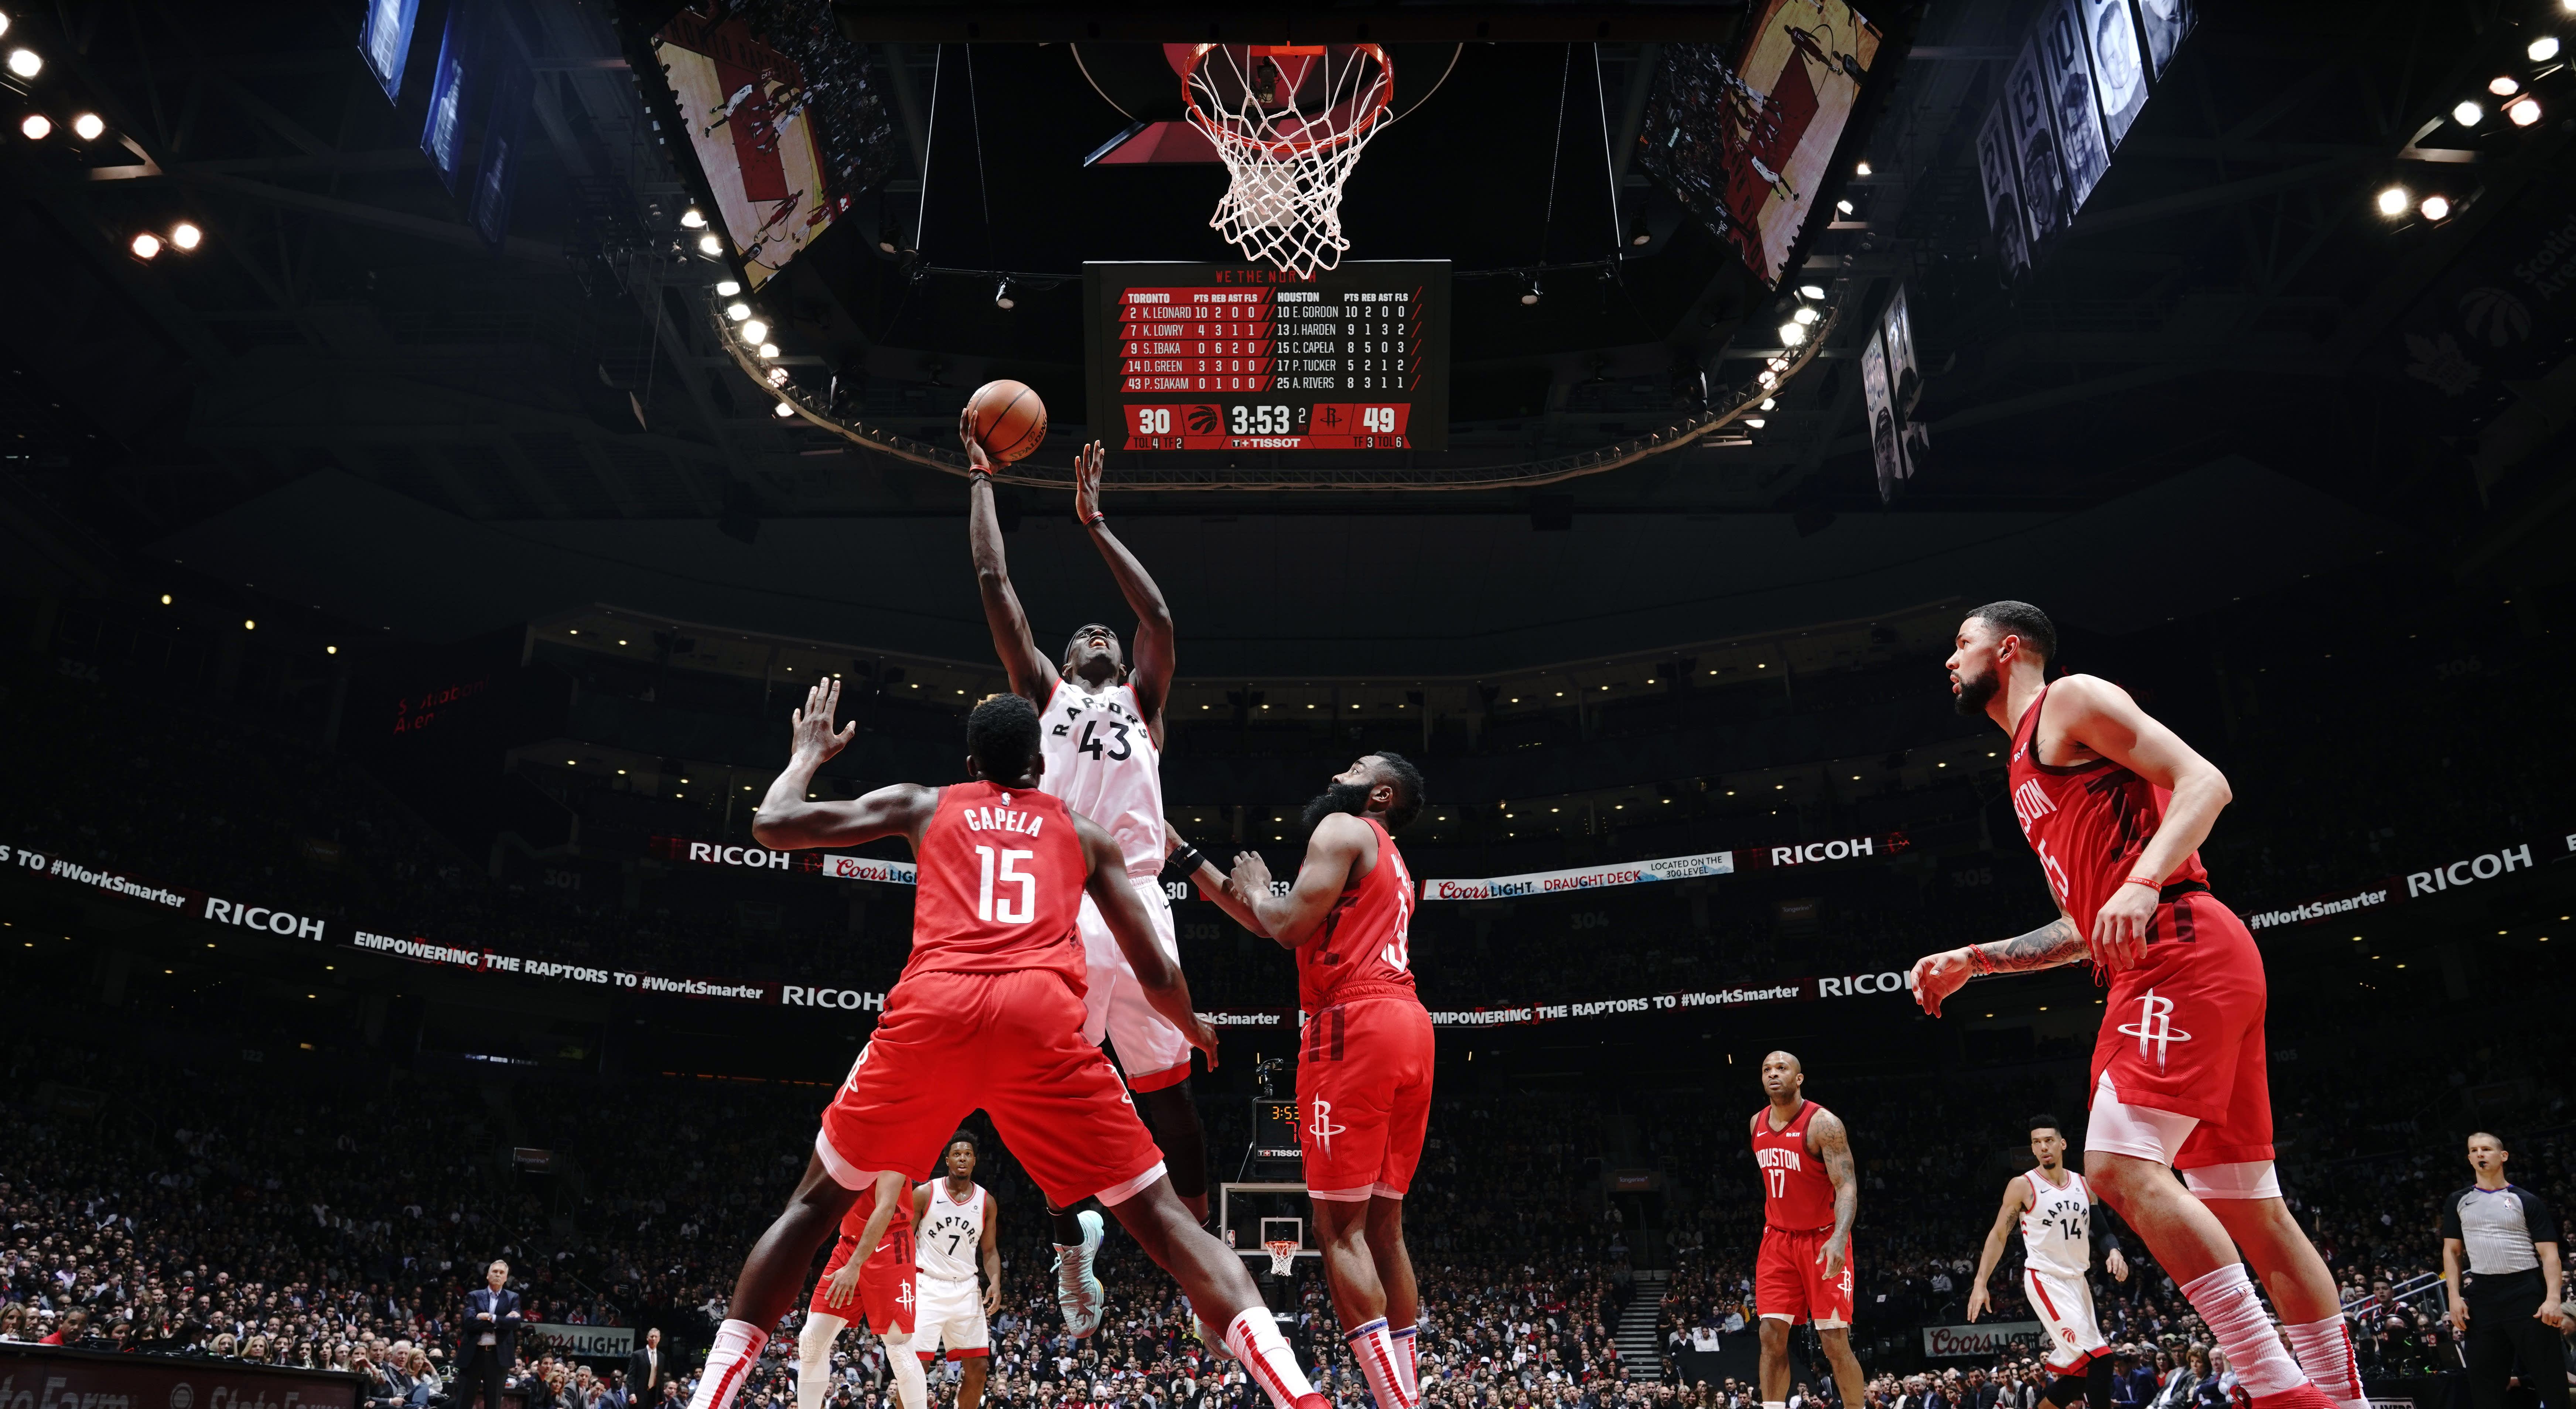 821dfa29a Pascal Siakam outscores the Rockets in 3rd quarter